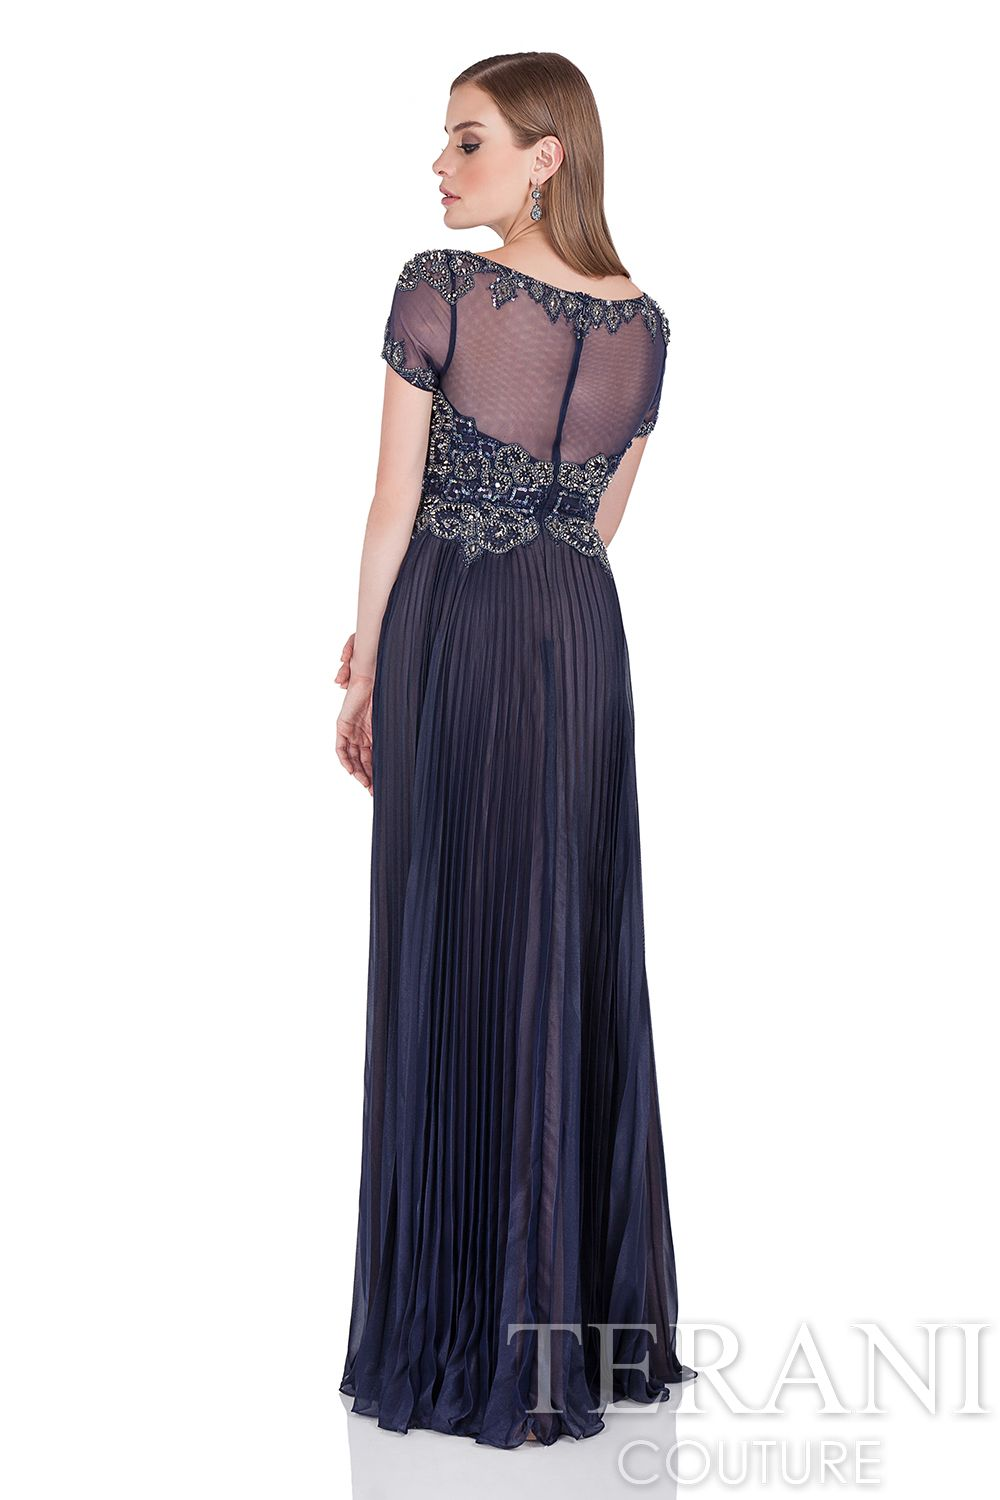 Short sleeve mother of the bride dress with dark sheer sleeves and